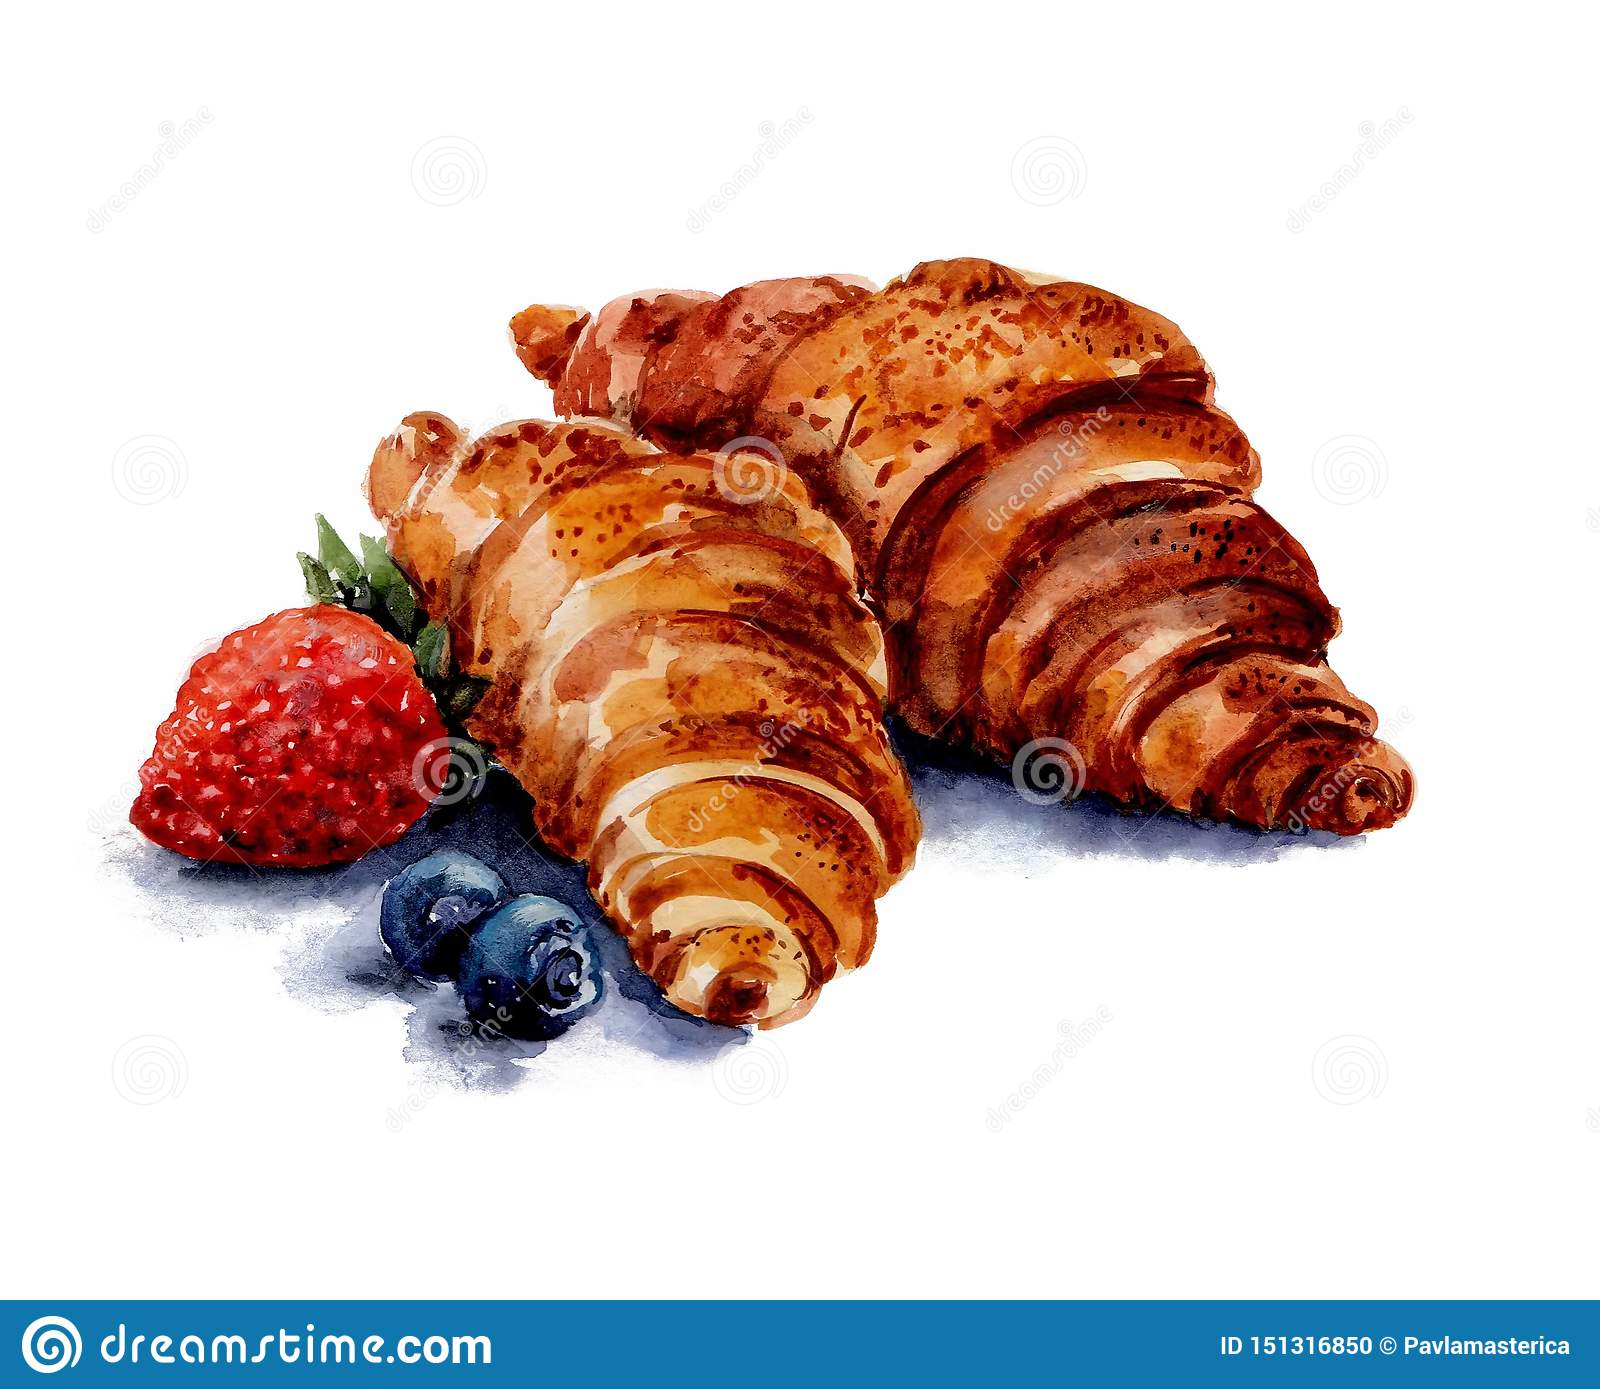 Two brown croissants are located in the center of the picture. To the left of them lie one berry of red strawberry and Watercolor.